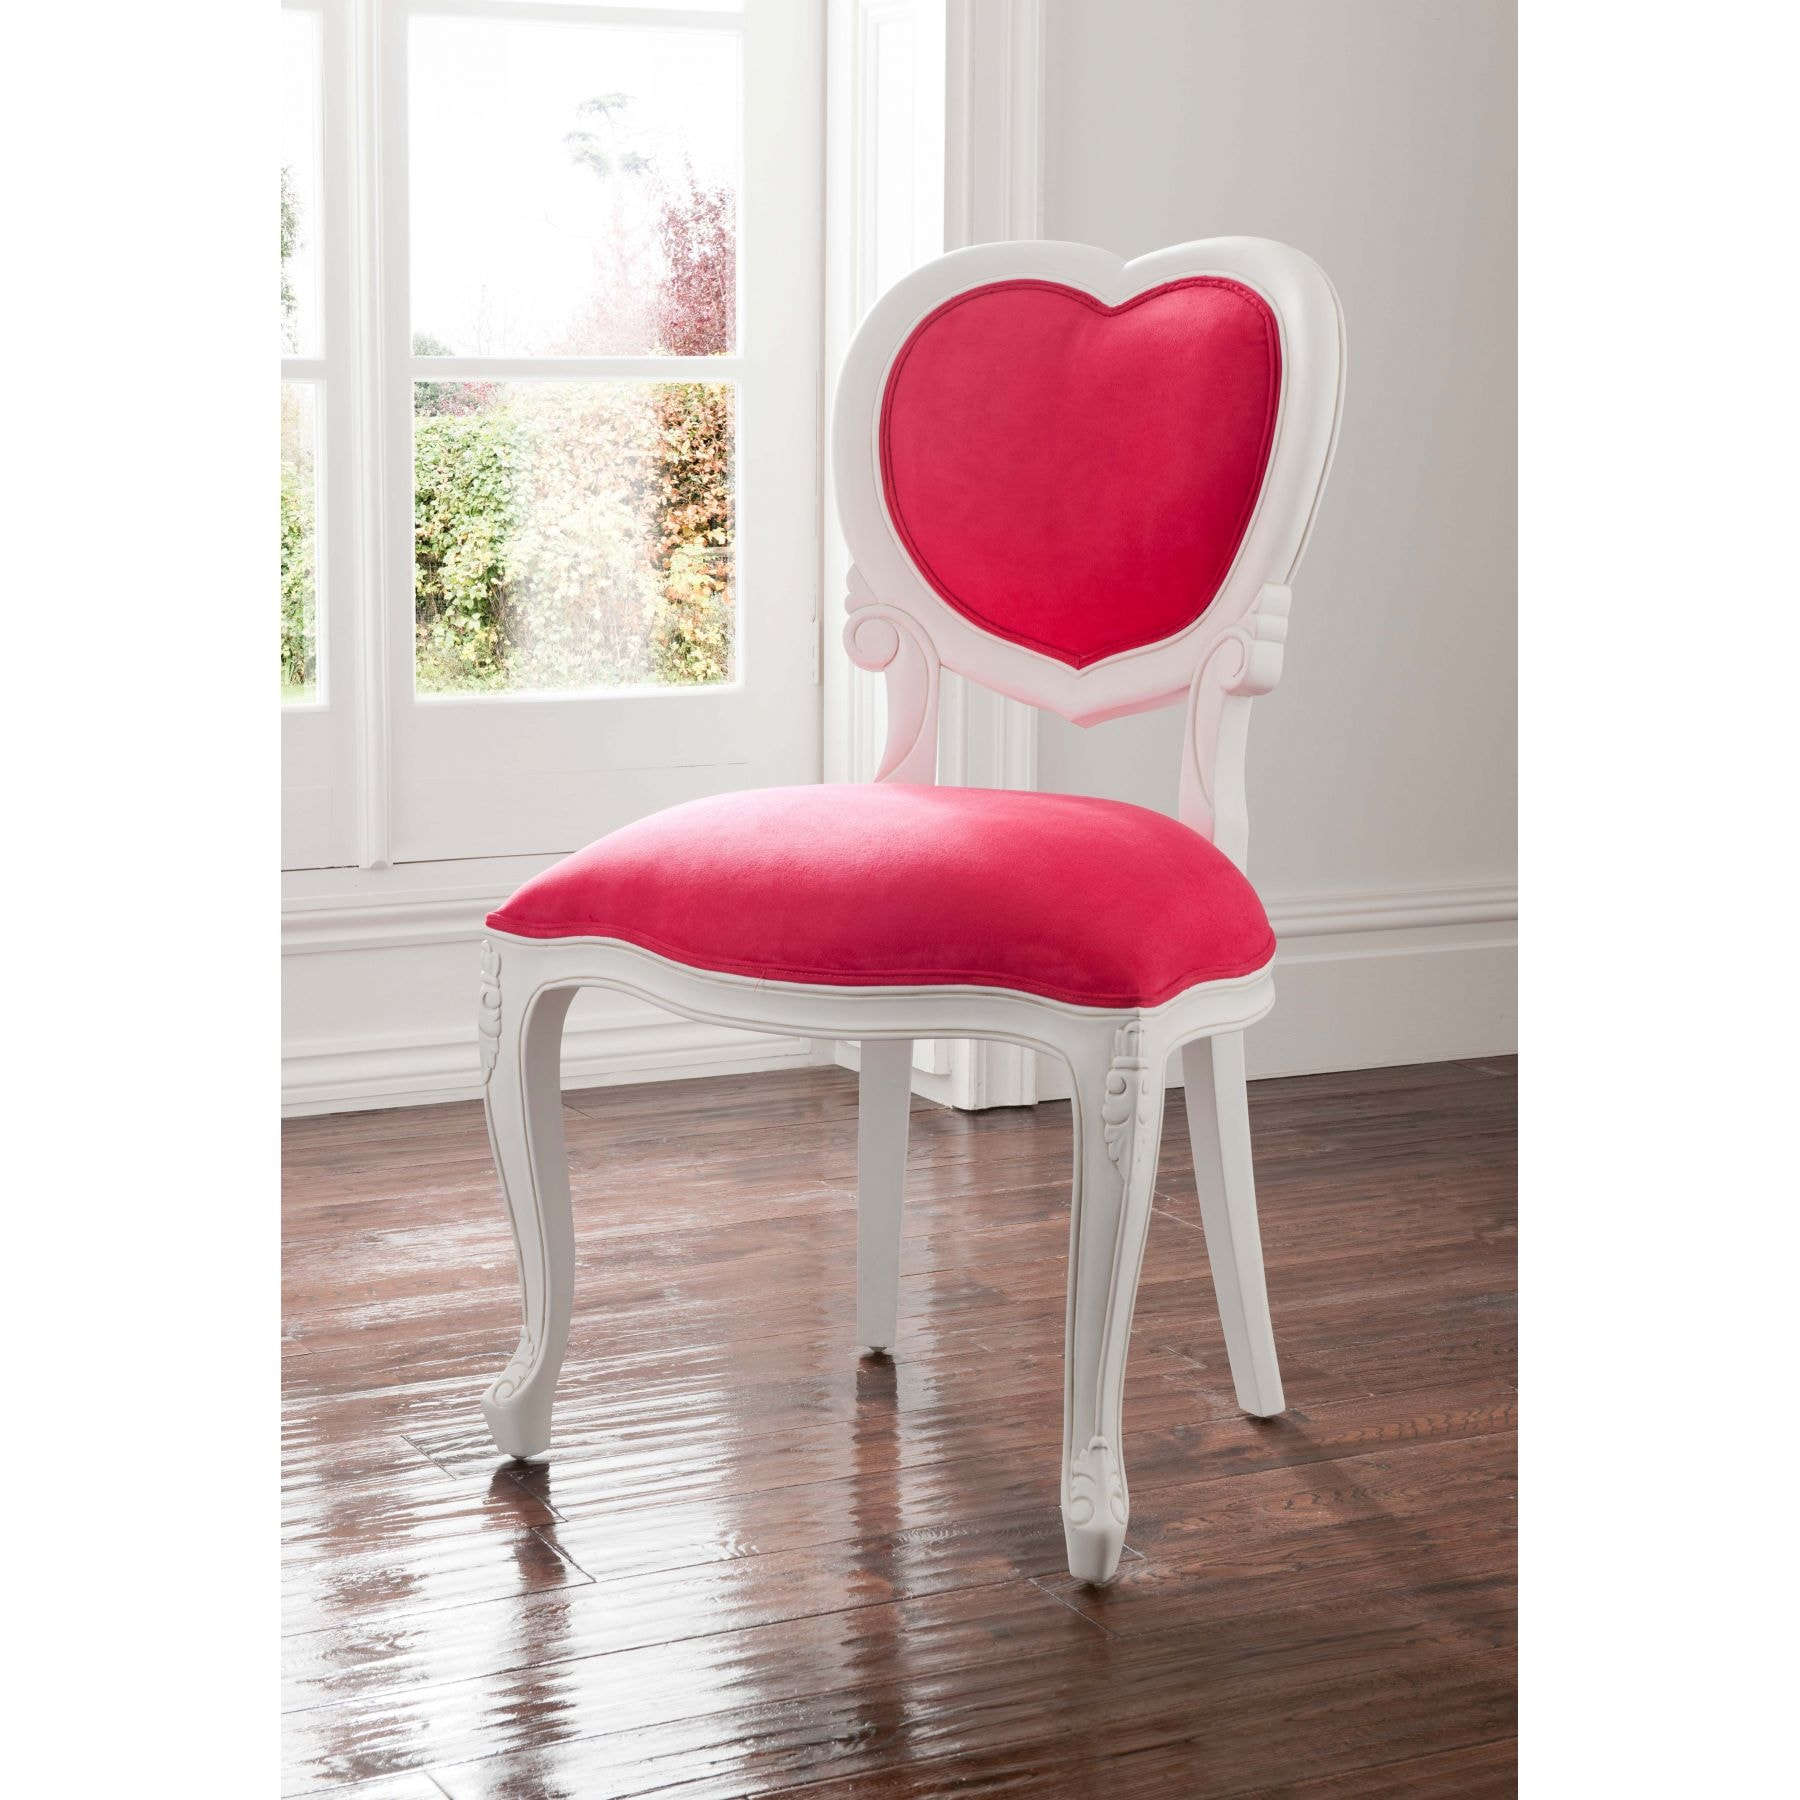 love making chair images old metal lawn chairs pink antique french heart is a must have